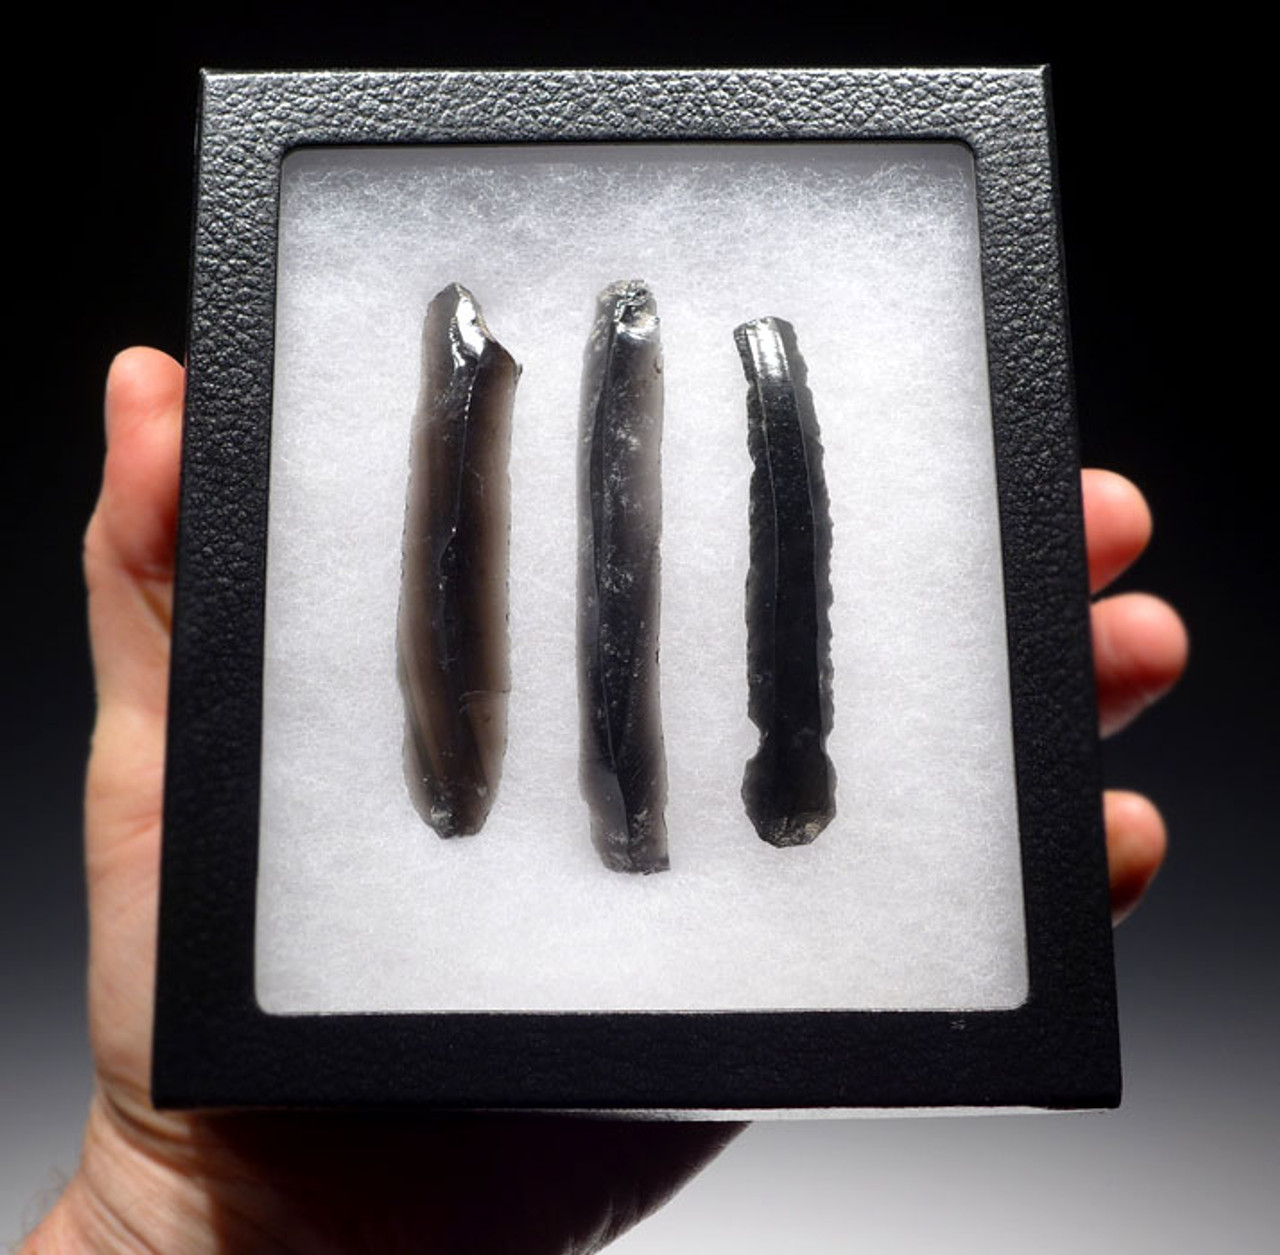 PC223 - SET OF THREE AZTEC PRE-COLUMBIAN COMPLETE UNBROKEN OBSIDIAN PRISMATIC BLADES ONE WITH EVIDENCE OF HAFTING